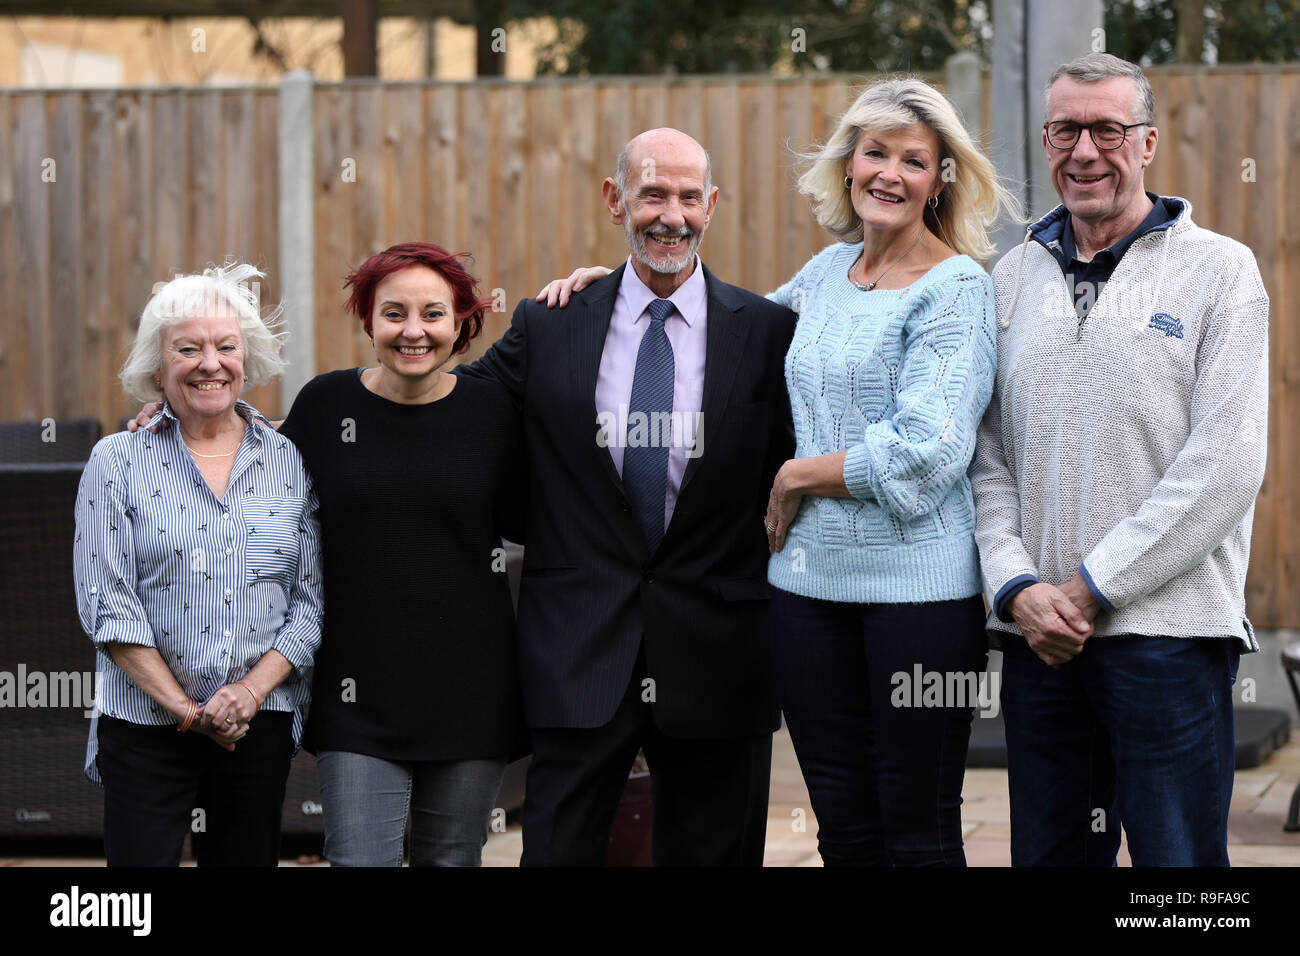 Teresa Dobson (second right) who donated her kidney to Joe